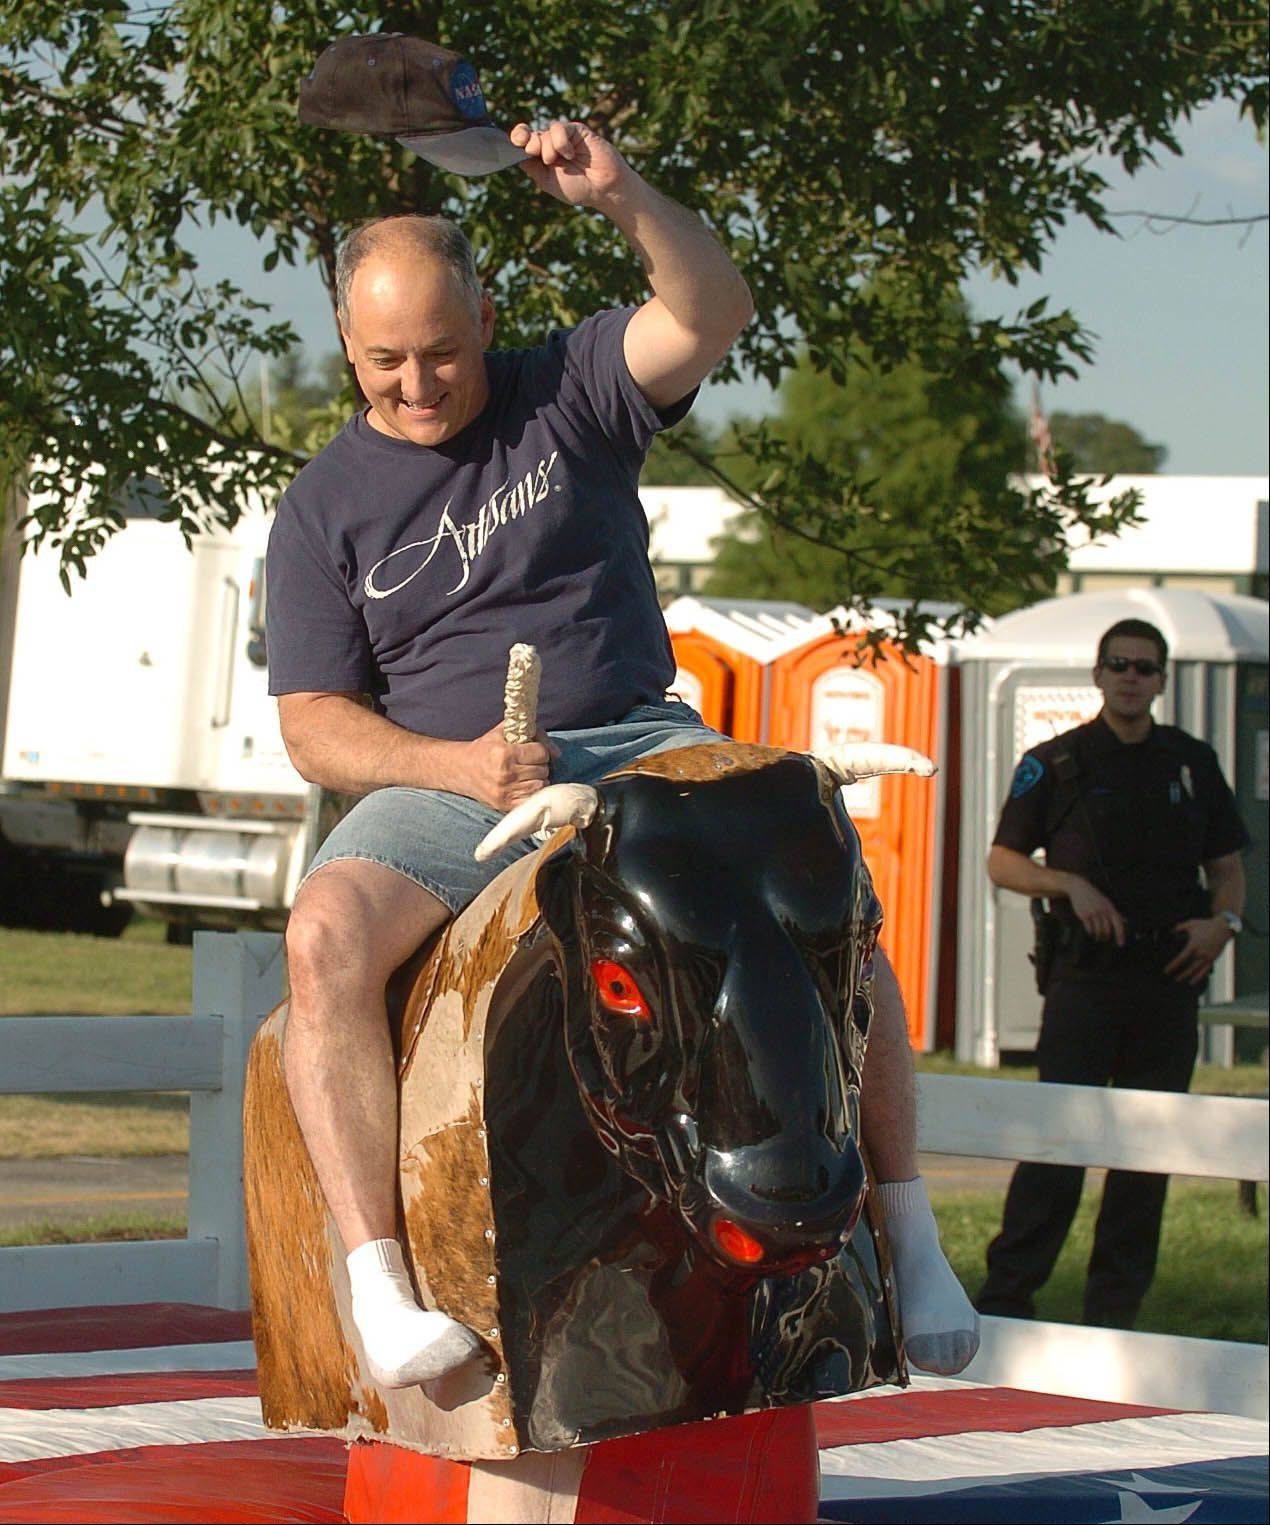 Proceeds from a mechanical bull ride at Glendale Heights Fest will help fund construction of a local food pantry.